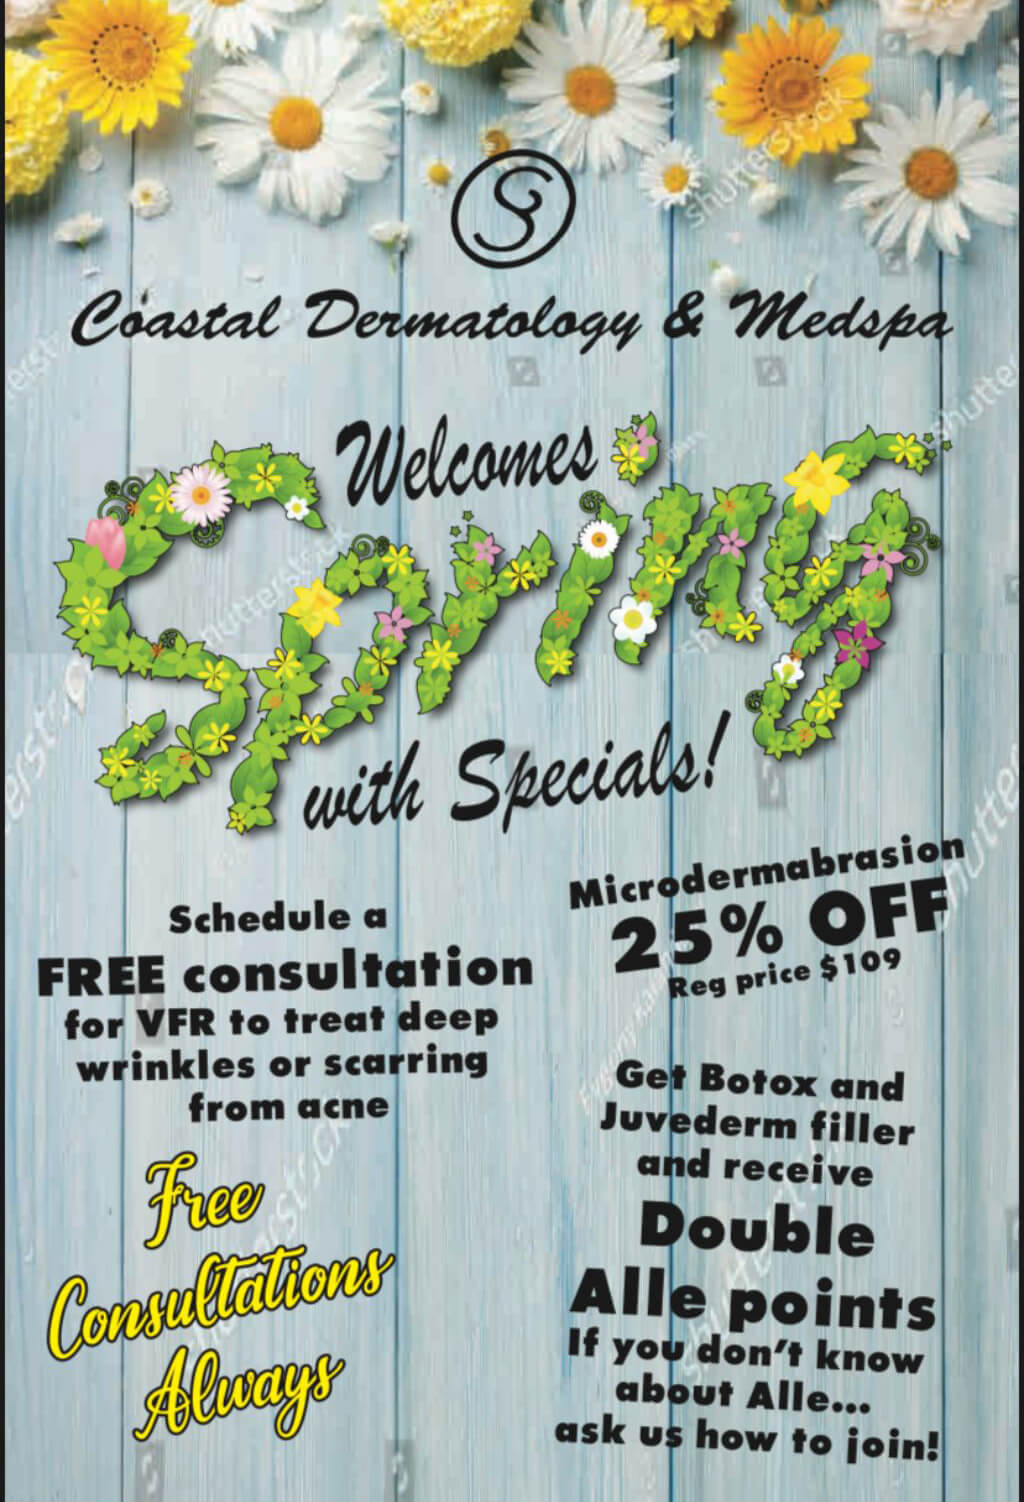 Welcome Spring with Specials!